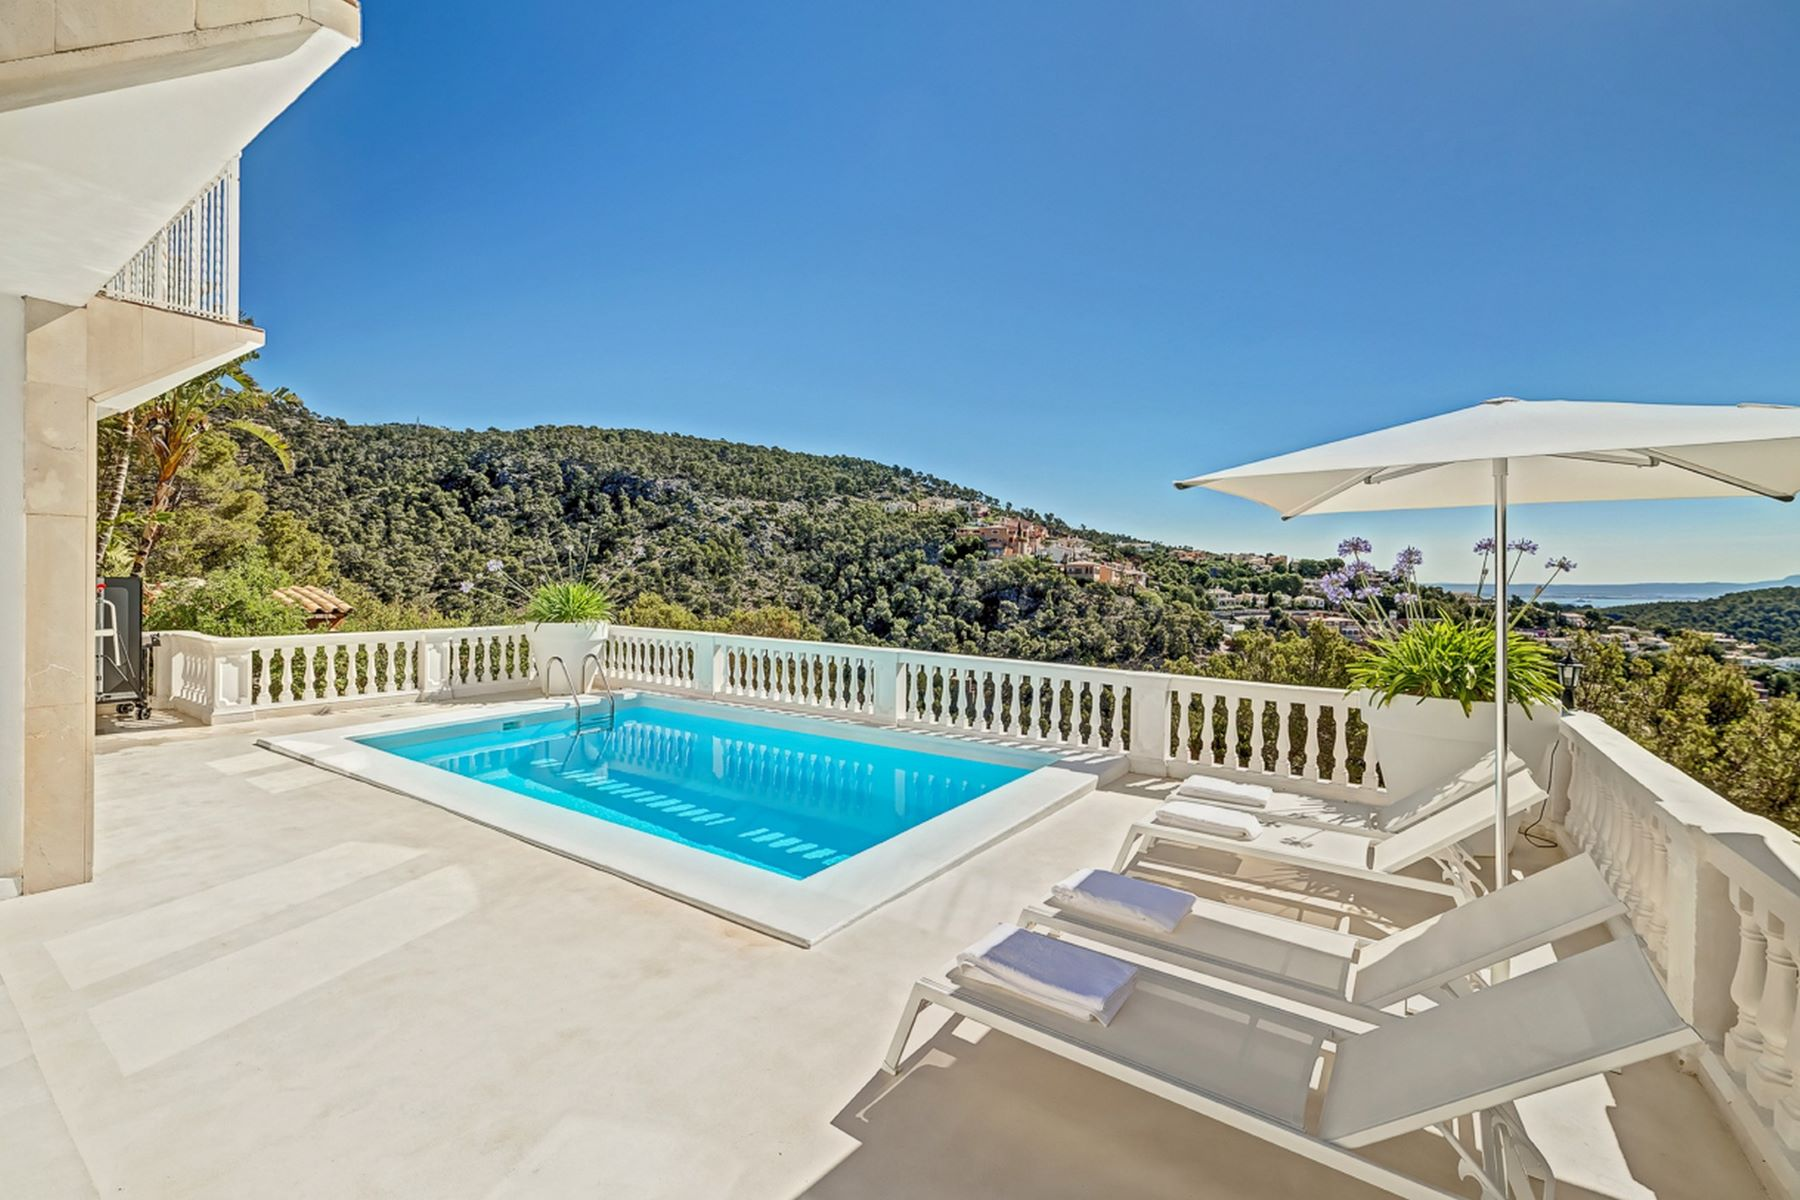 Single Family Home for Rent at Luxury villa for rent en Costa dén Blanes Other Balearic Islands, Balearic Islands 07181 Spain